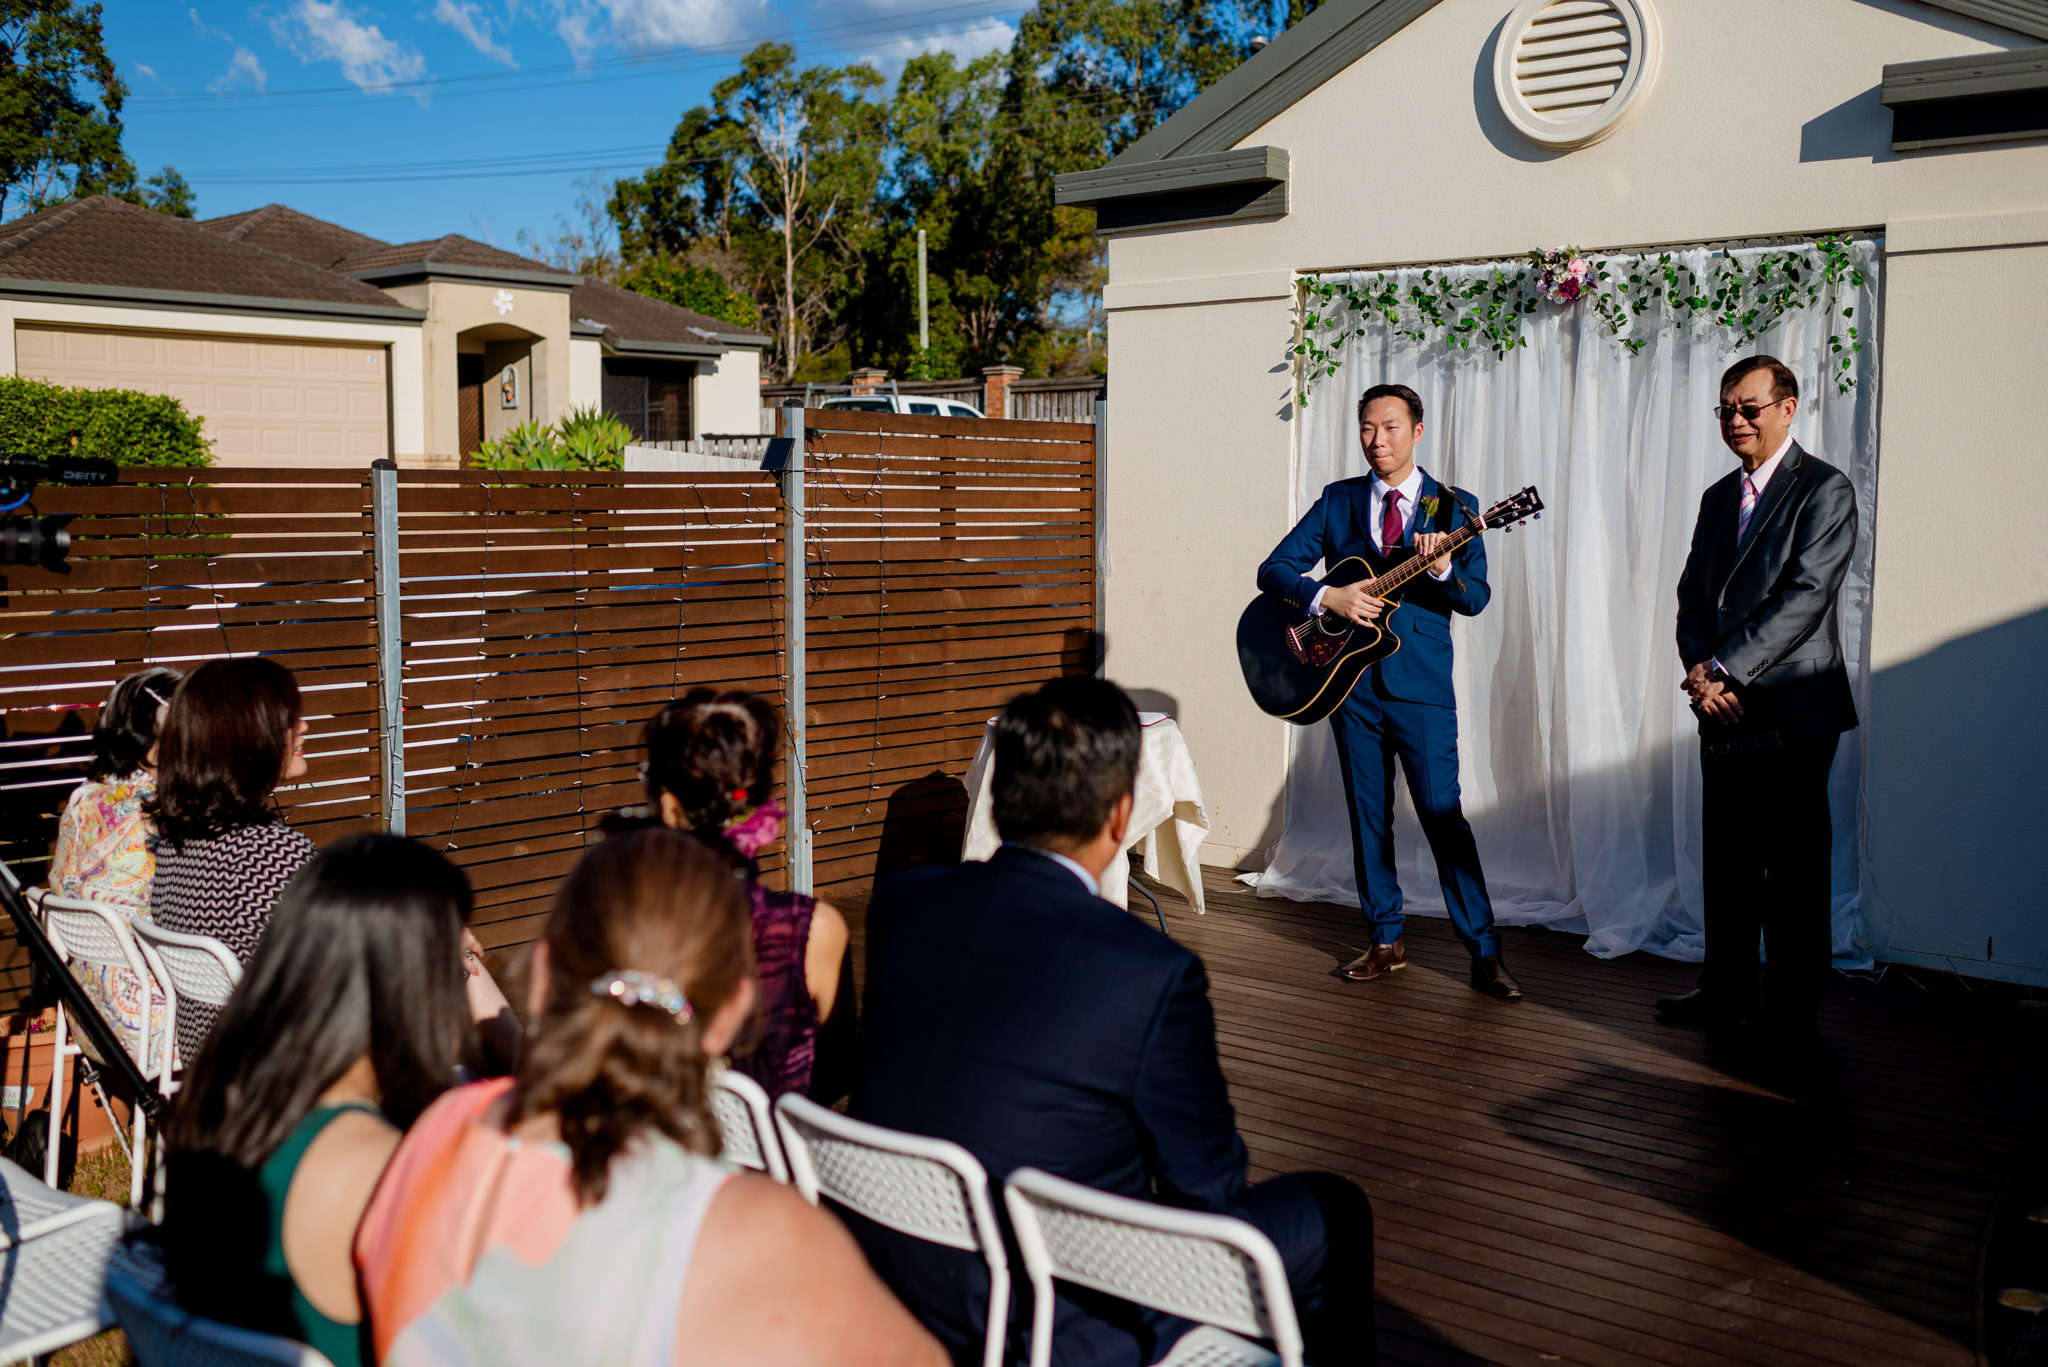 A groom holding a guitar and a celebrant stand in front of a small gathering of people sitting on a wooden deck